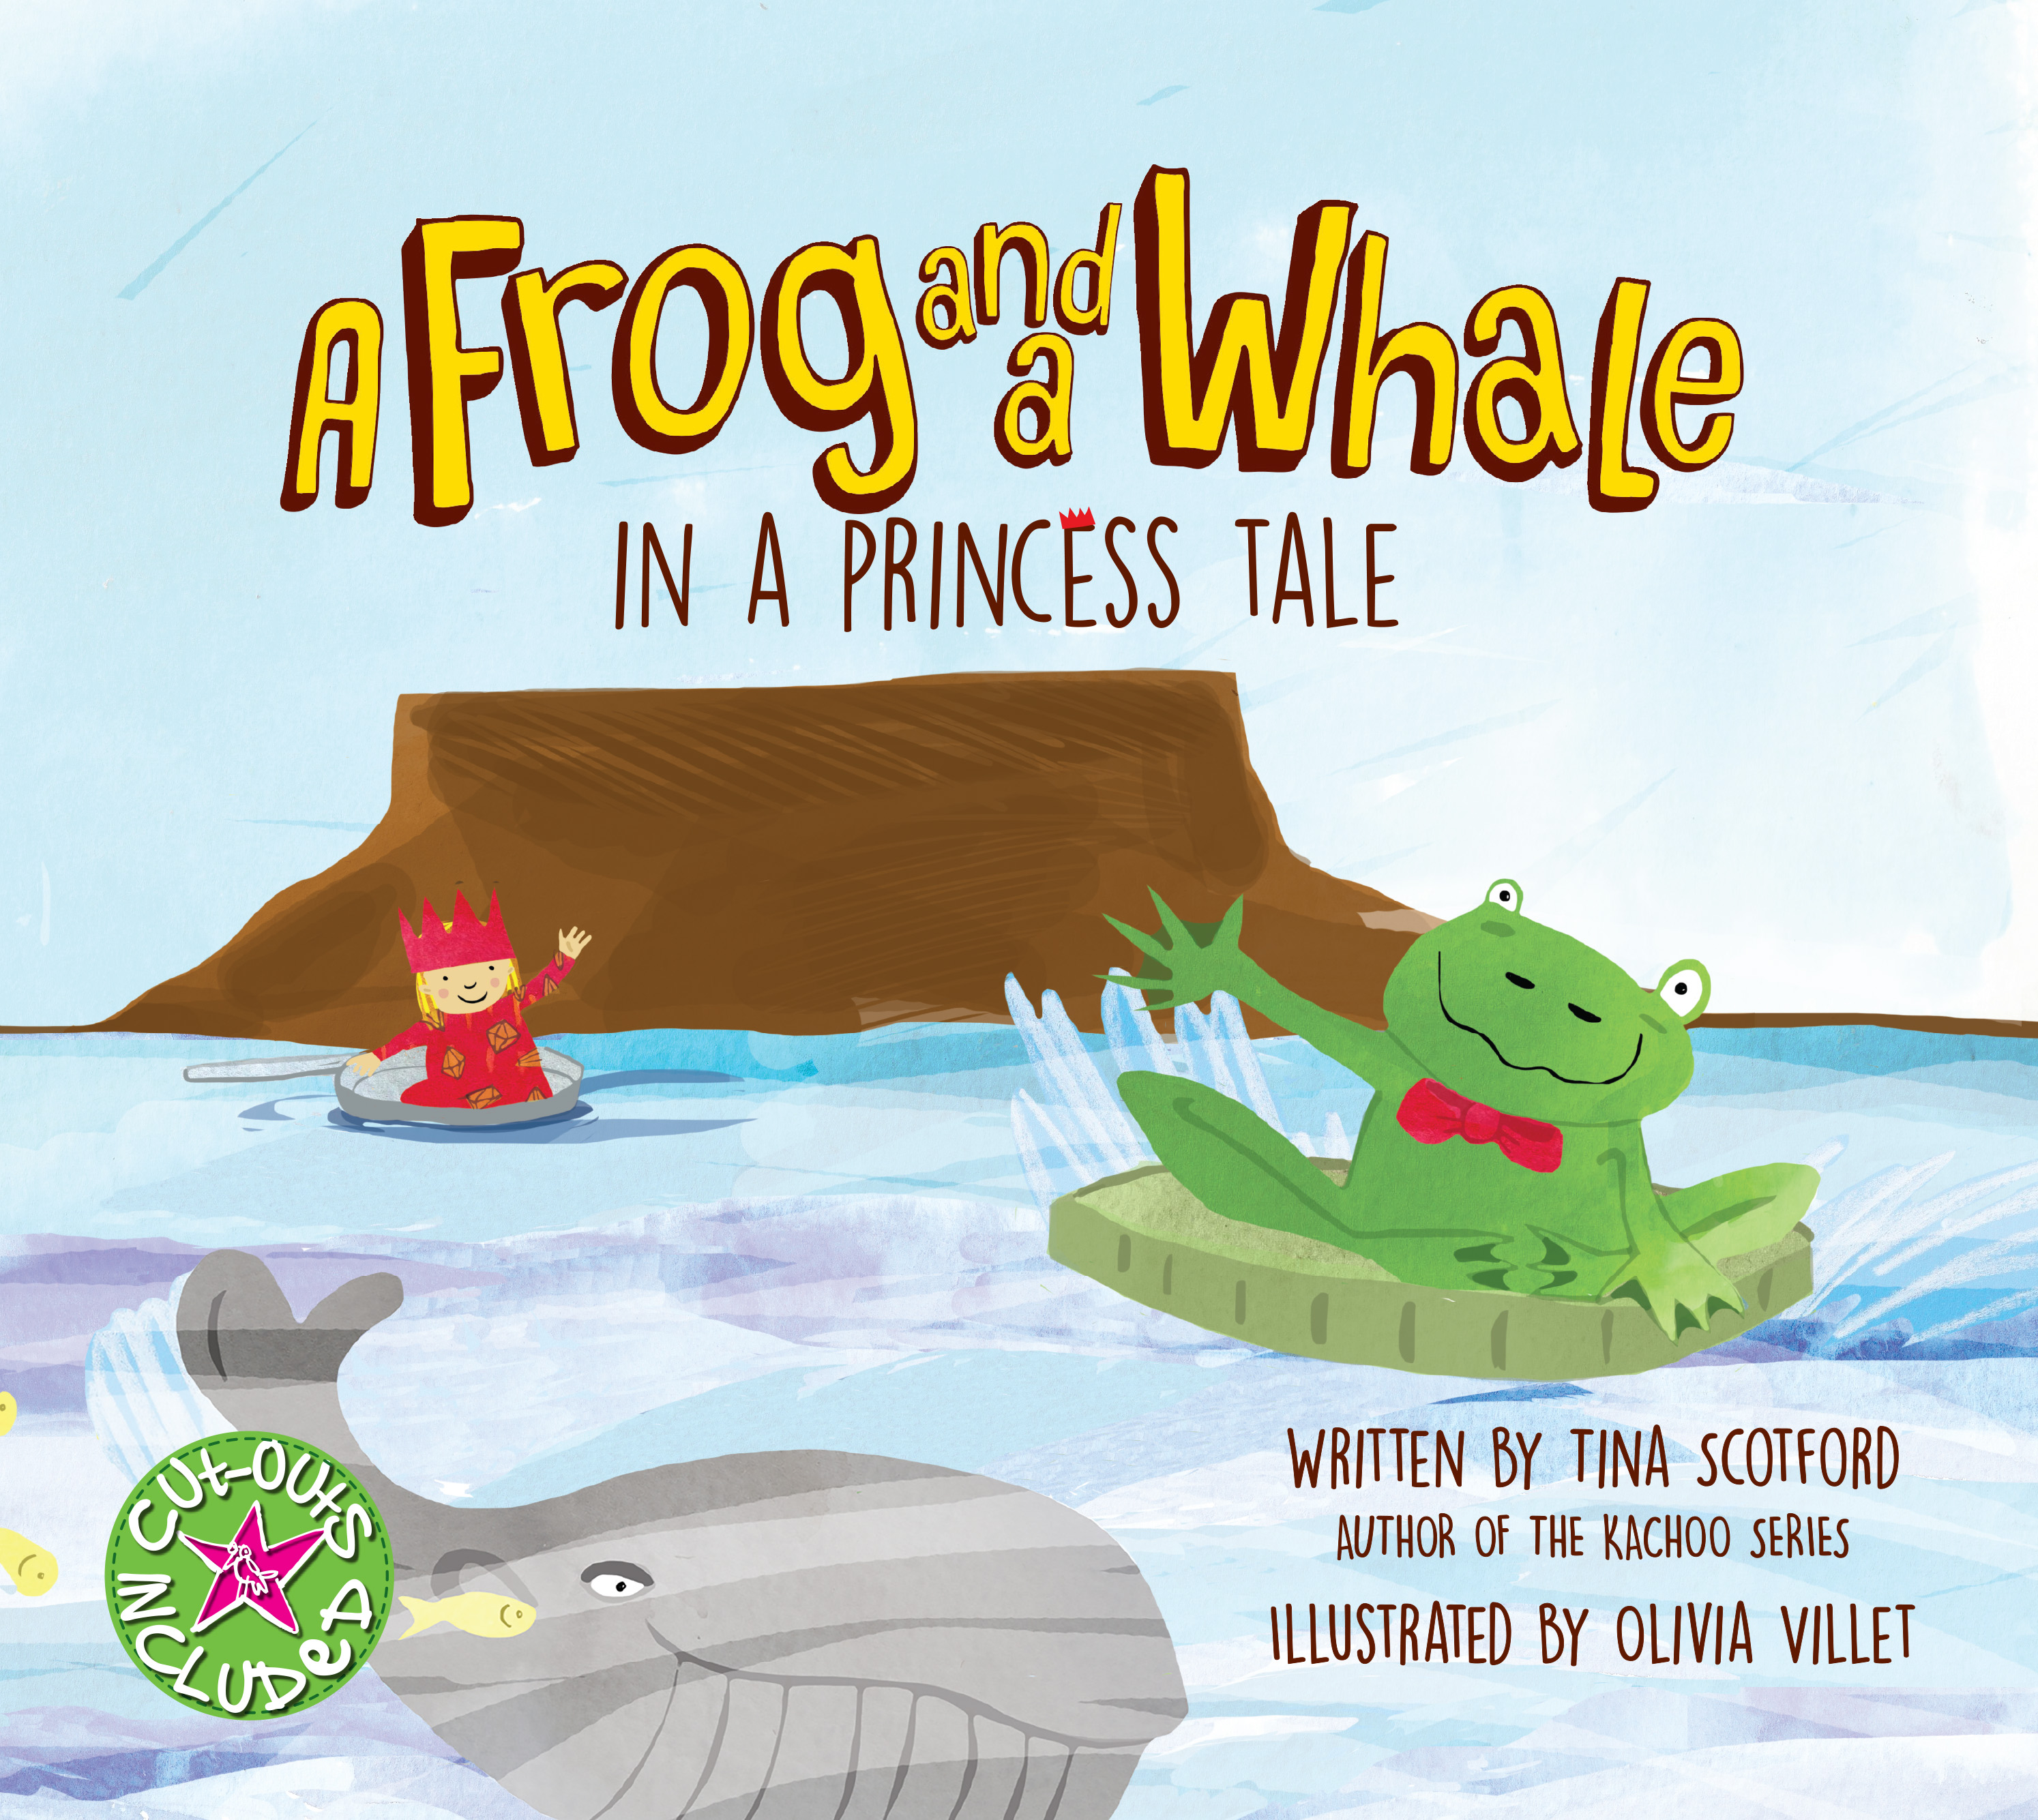 A FROG AND A WHALE IN A PRINCESS TALE